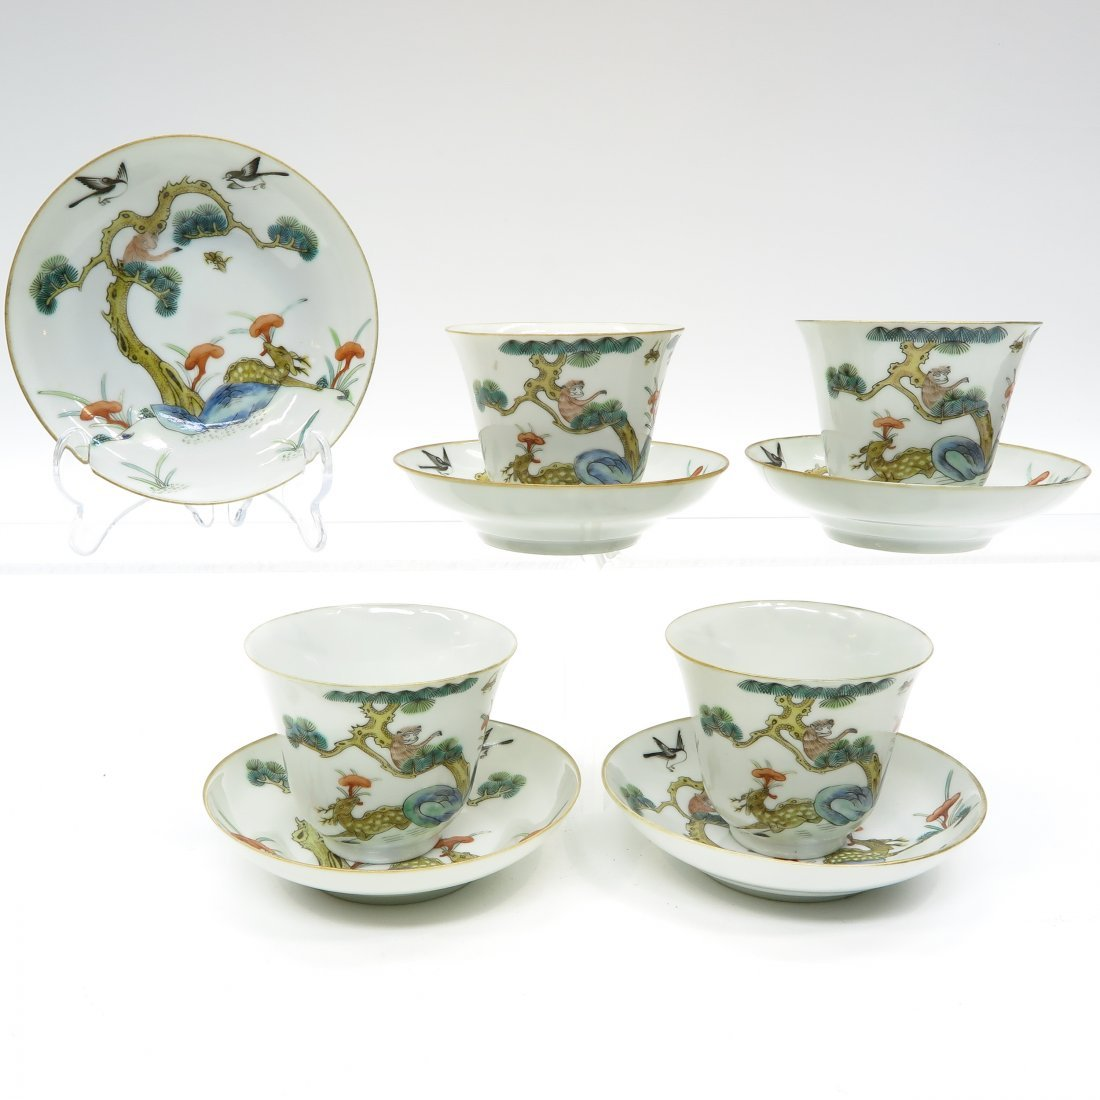 19th Century China Porcelain Cups and Saucers